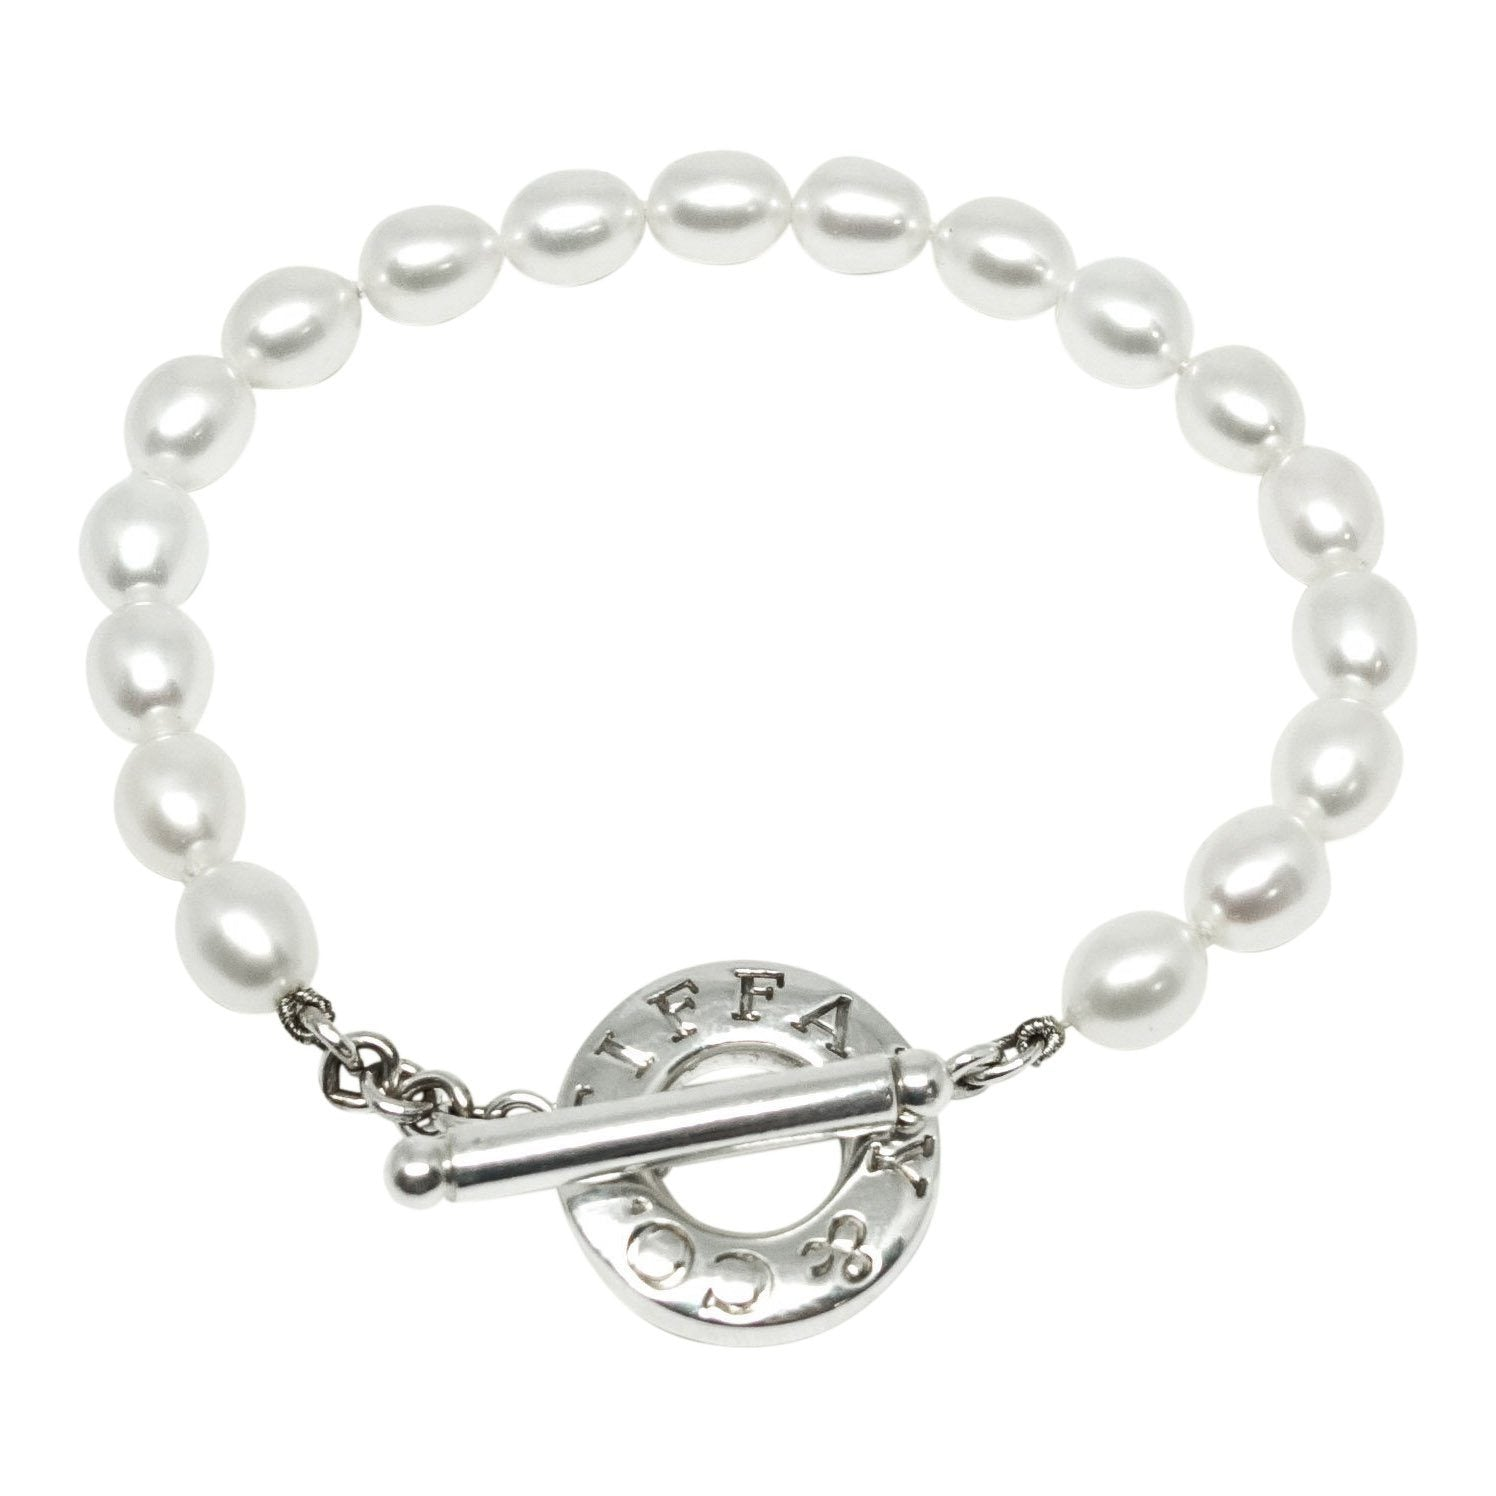 3a723507c Tiffany & Co. Pearl Bracelet with Sterling Silver Toggle Clasp Bracelets  Tiffany & Co.